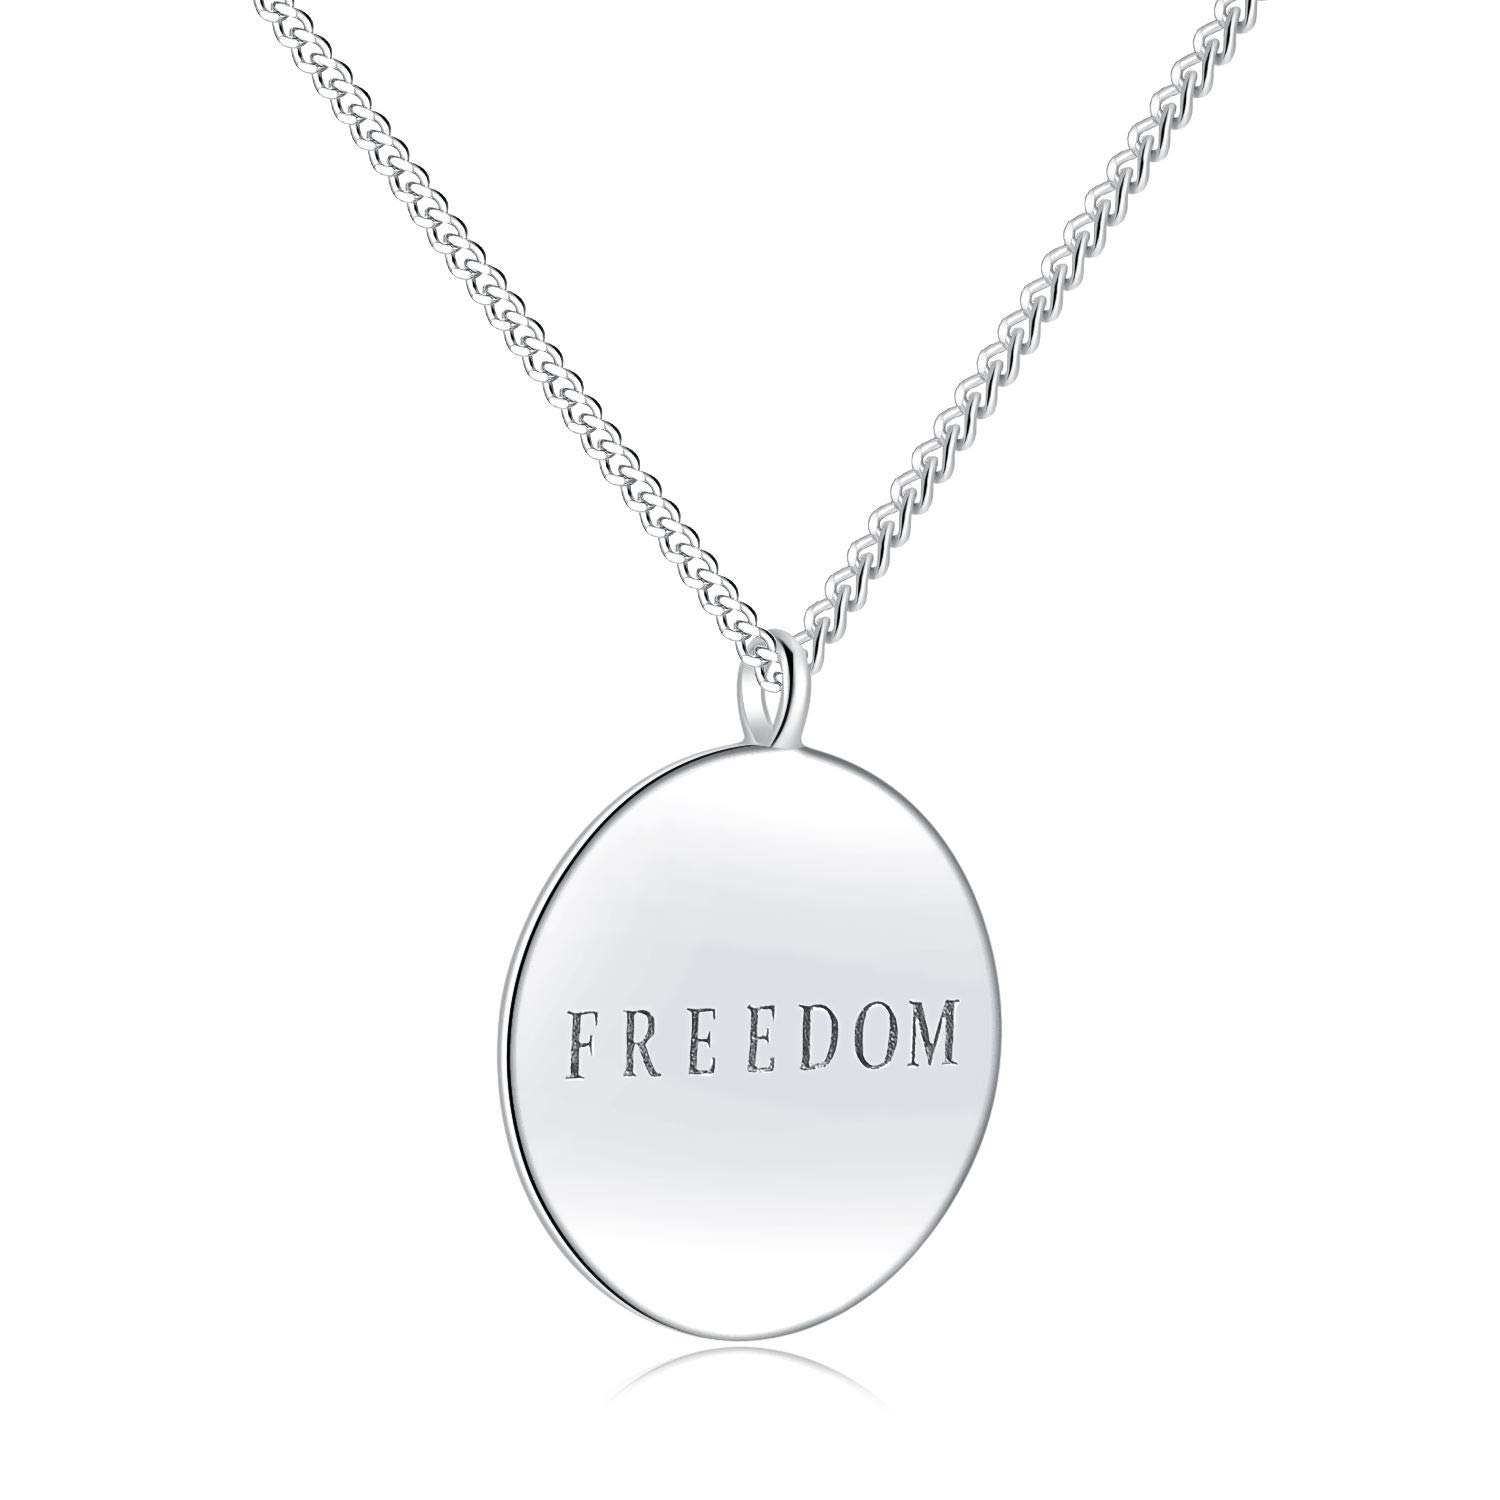 Victoria Jewelry Necklace for Women, Dainty Freeddom Circle Pendant Gift for Wife, Mom, Girlfriend, Bestfriend